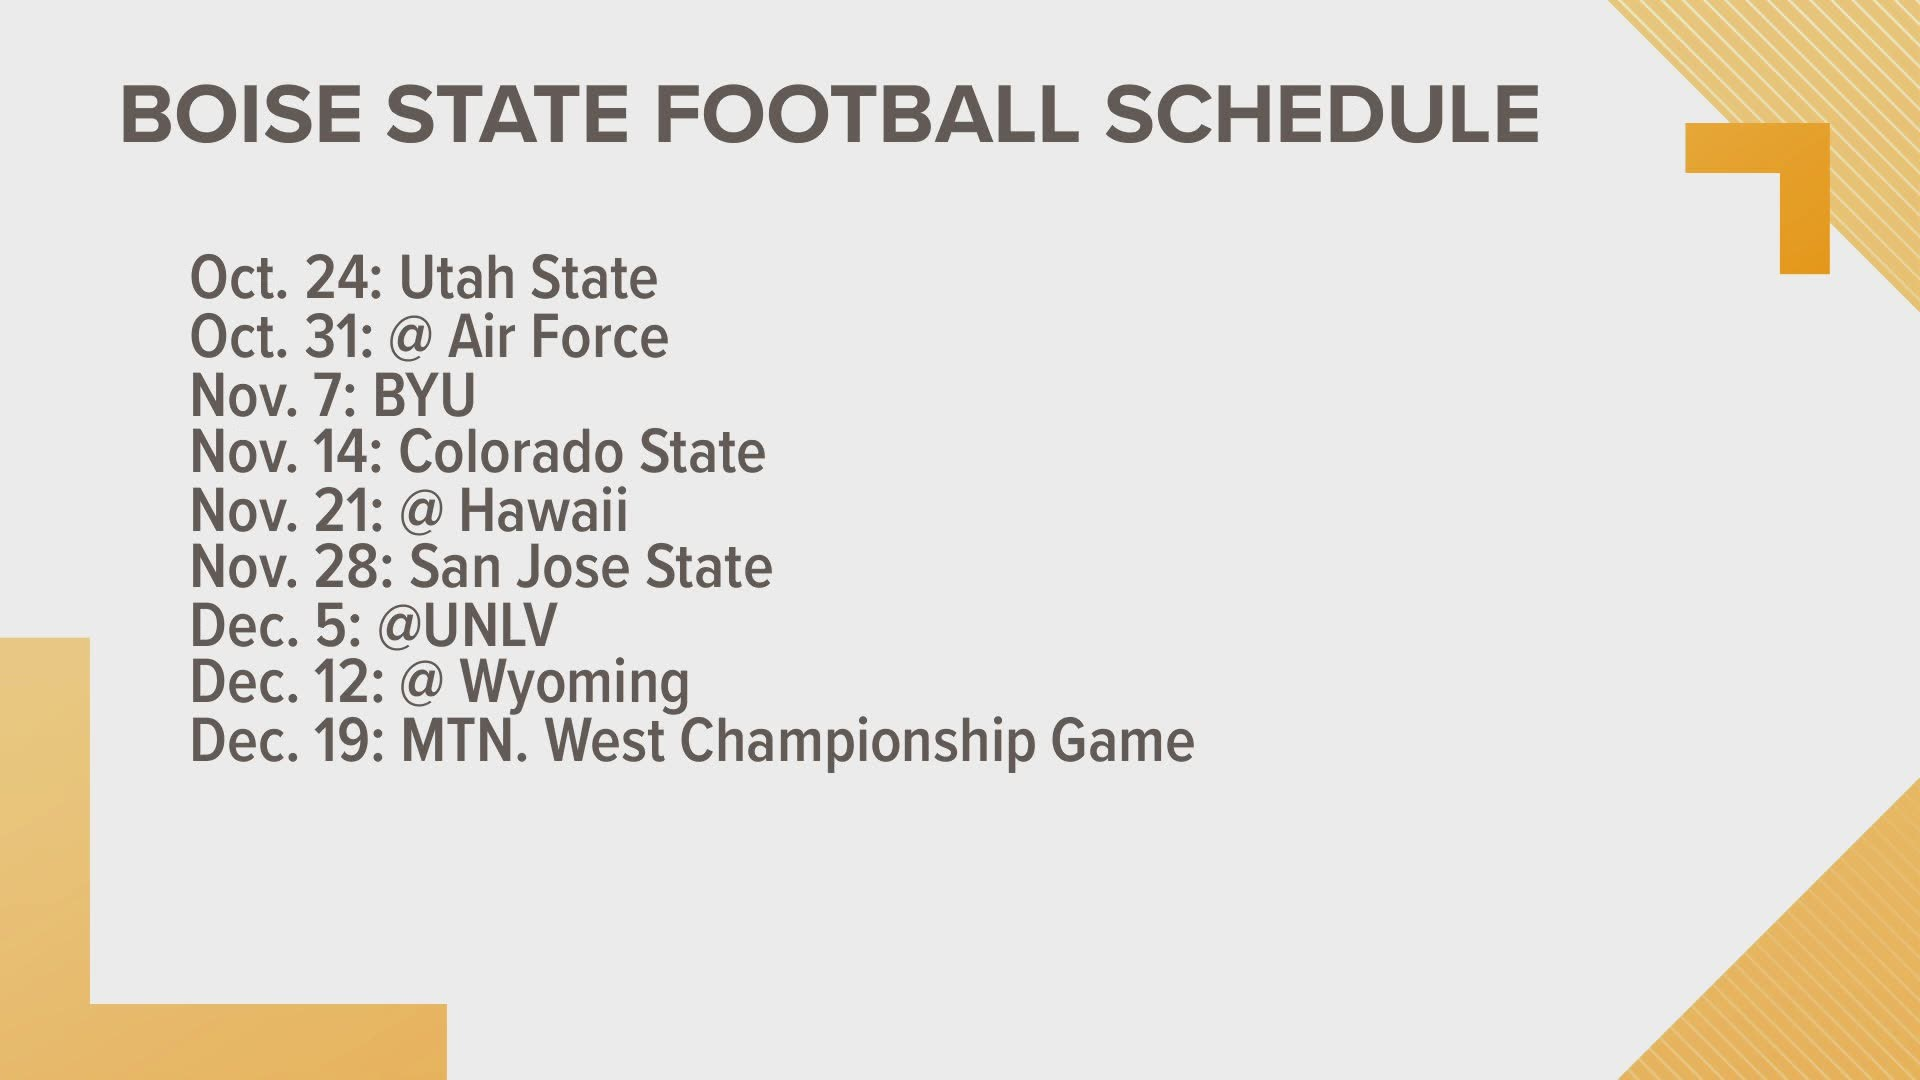 Boise State S 2020 Football Schedule Released With An Early November Game Vs Byu Ktvb Com